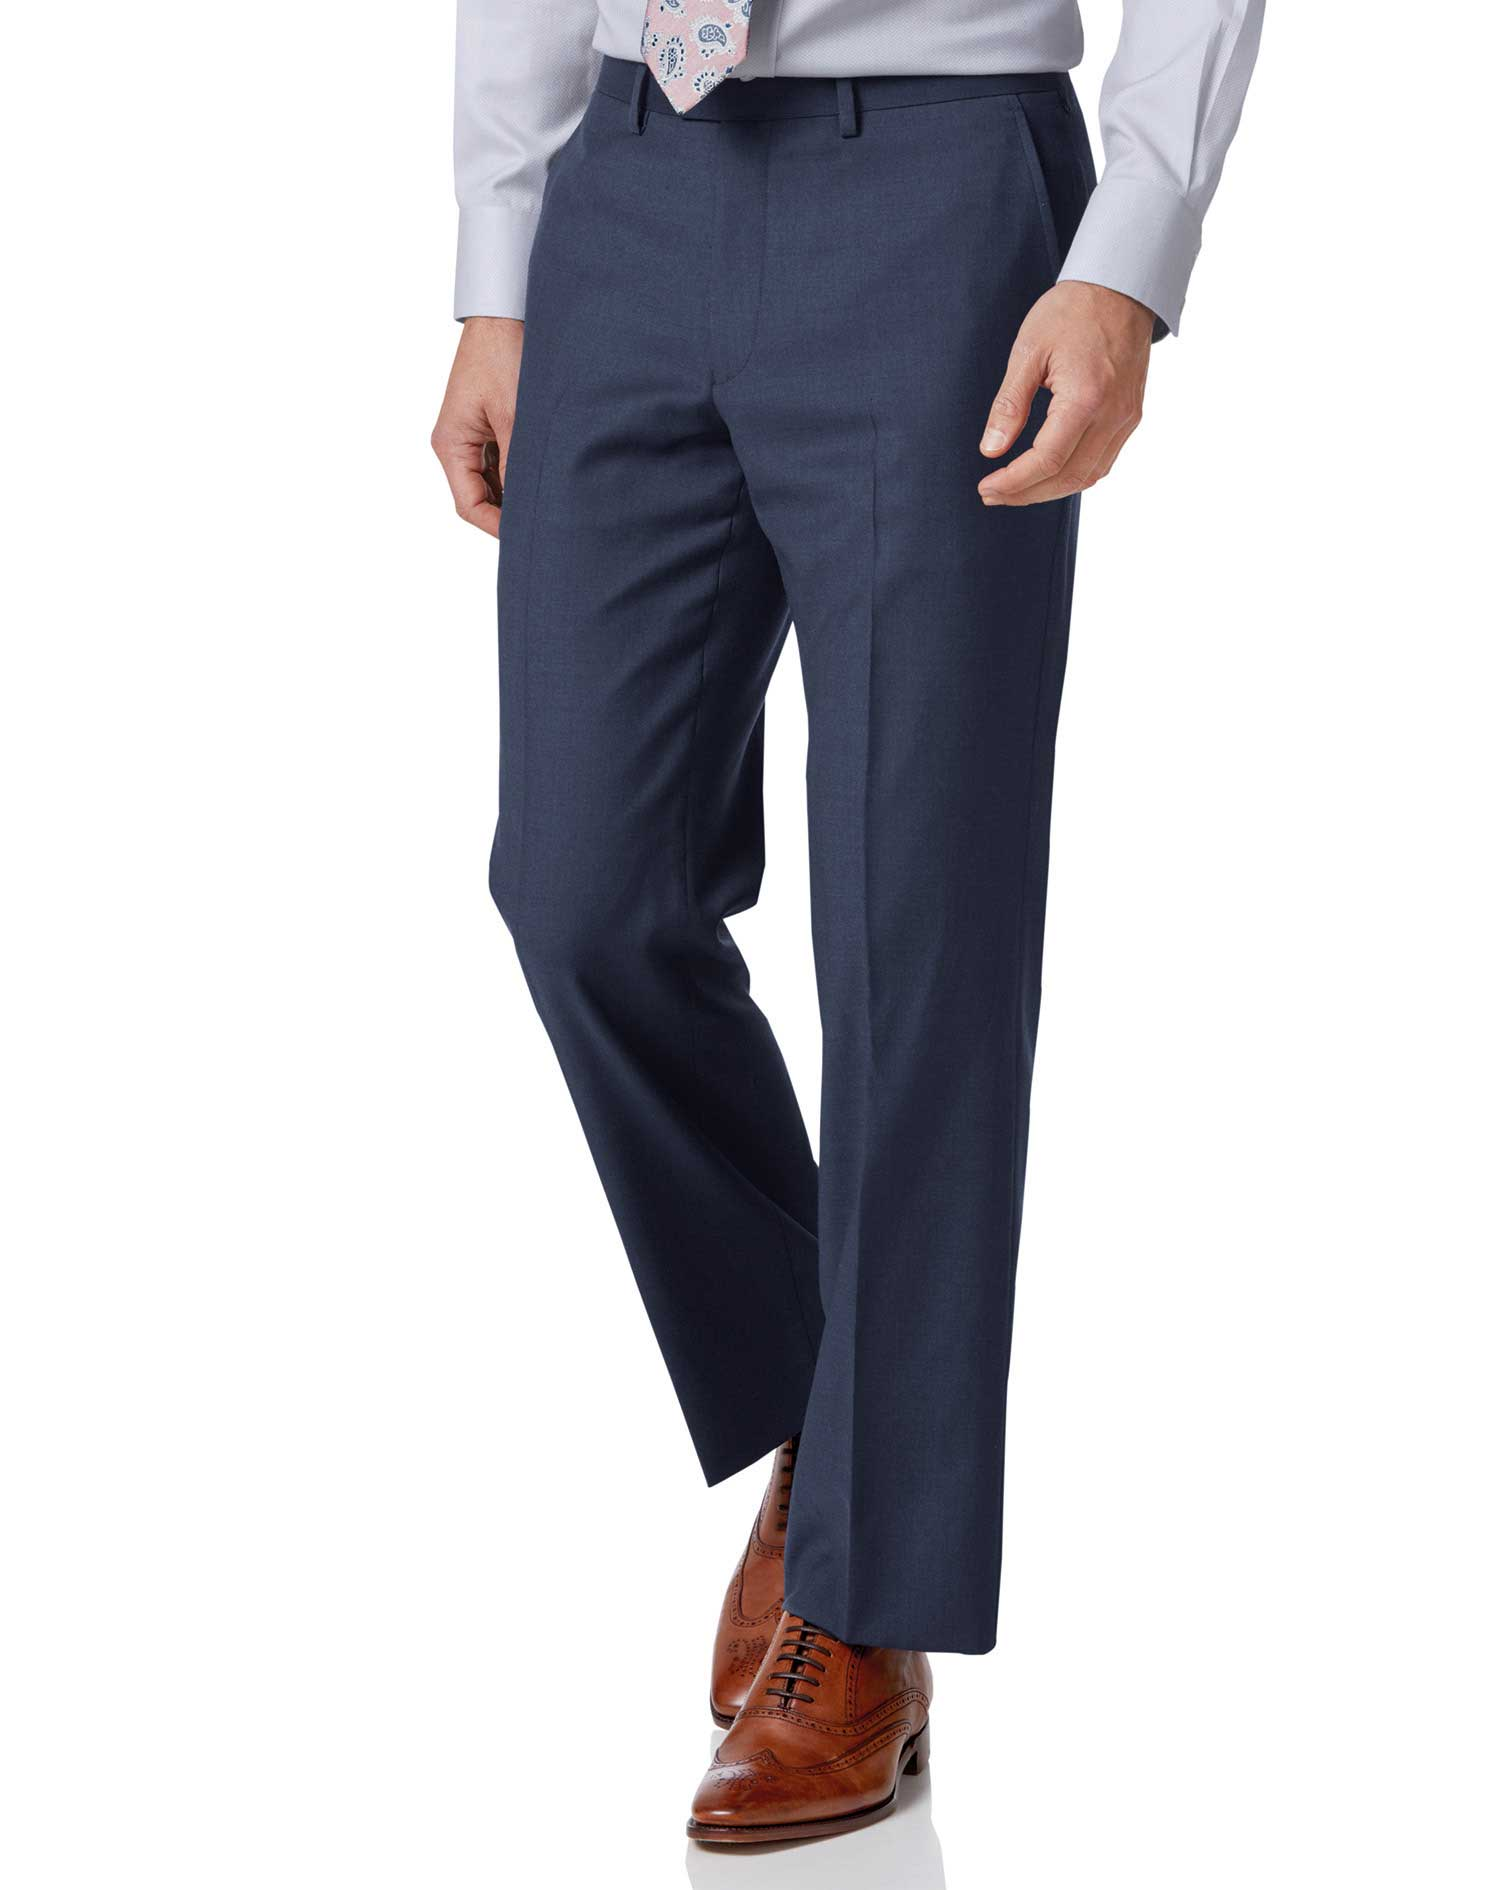 Mid Blue Classic Fit Twill Business Suit Trousers Size W36 L32 by Charles Tyrwhitt